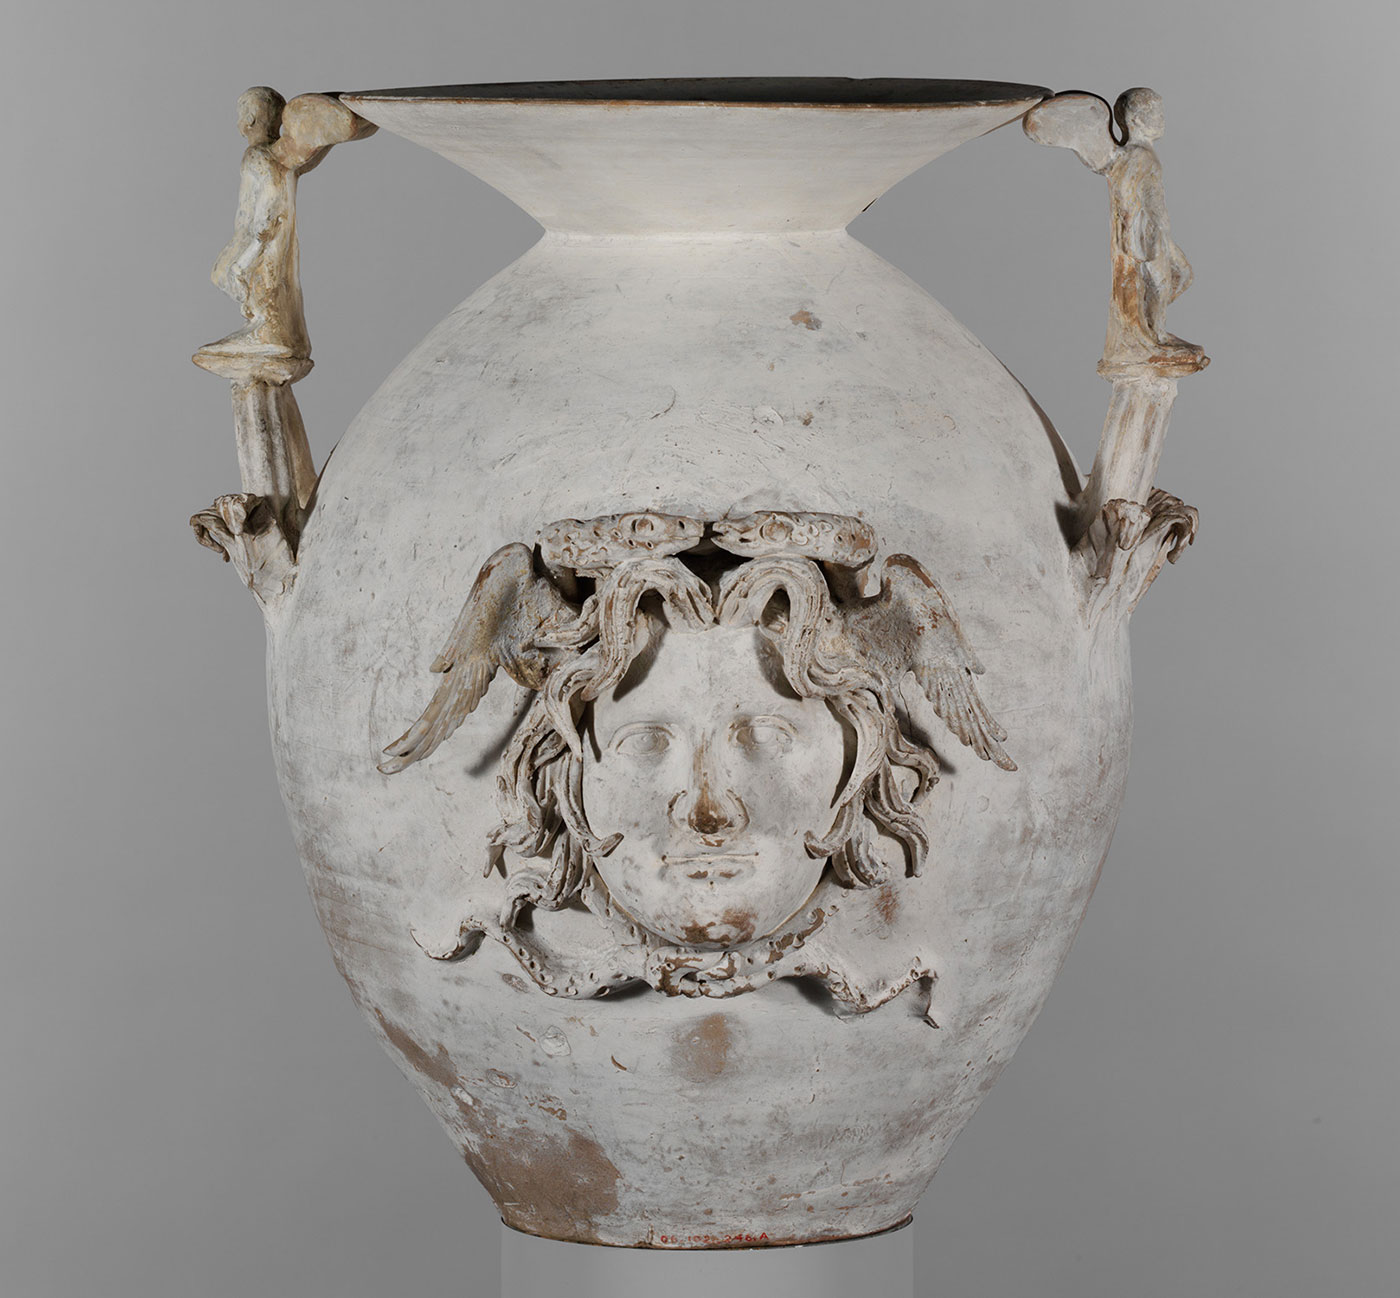 Terracotta two-handled funnel vase with Medusa head (Greek, South Italian, Apulian, Canosan, Early Hellenistic, late 4th–early 3rd century BCE), terracotta, height: 30 3/4 inches; diameter: 17 5/16 inches (courtesy the Metropolitan Museum of Art, Rogers Fund, 1906) (Image from  Hyperallergic article )